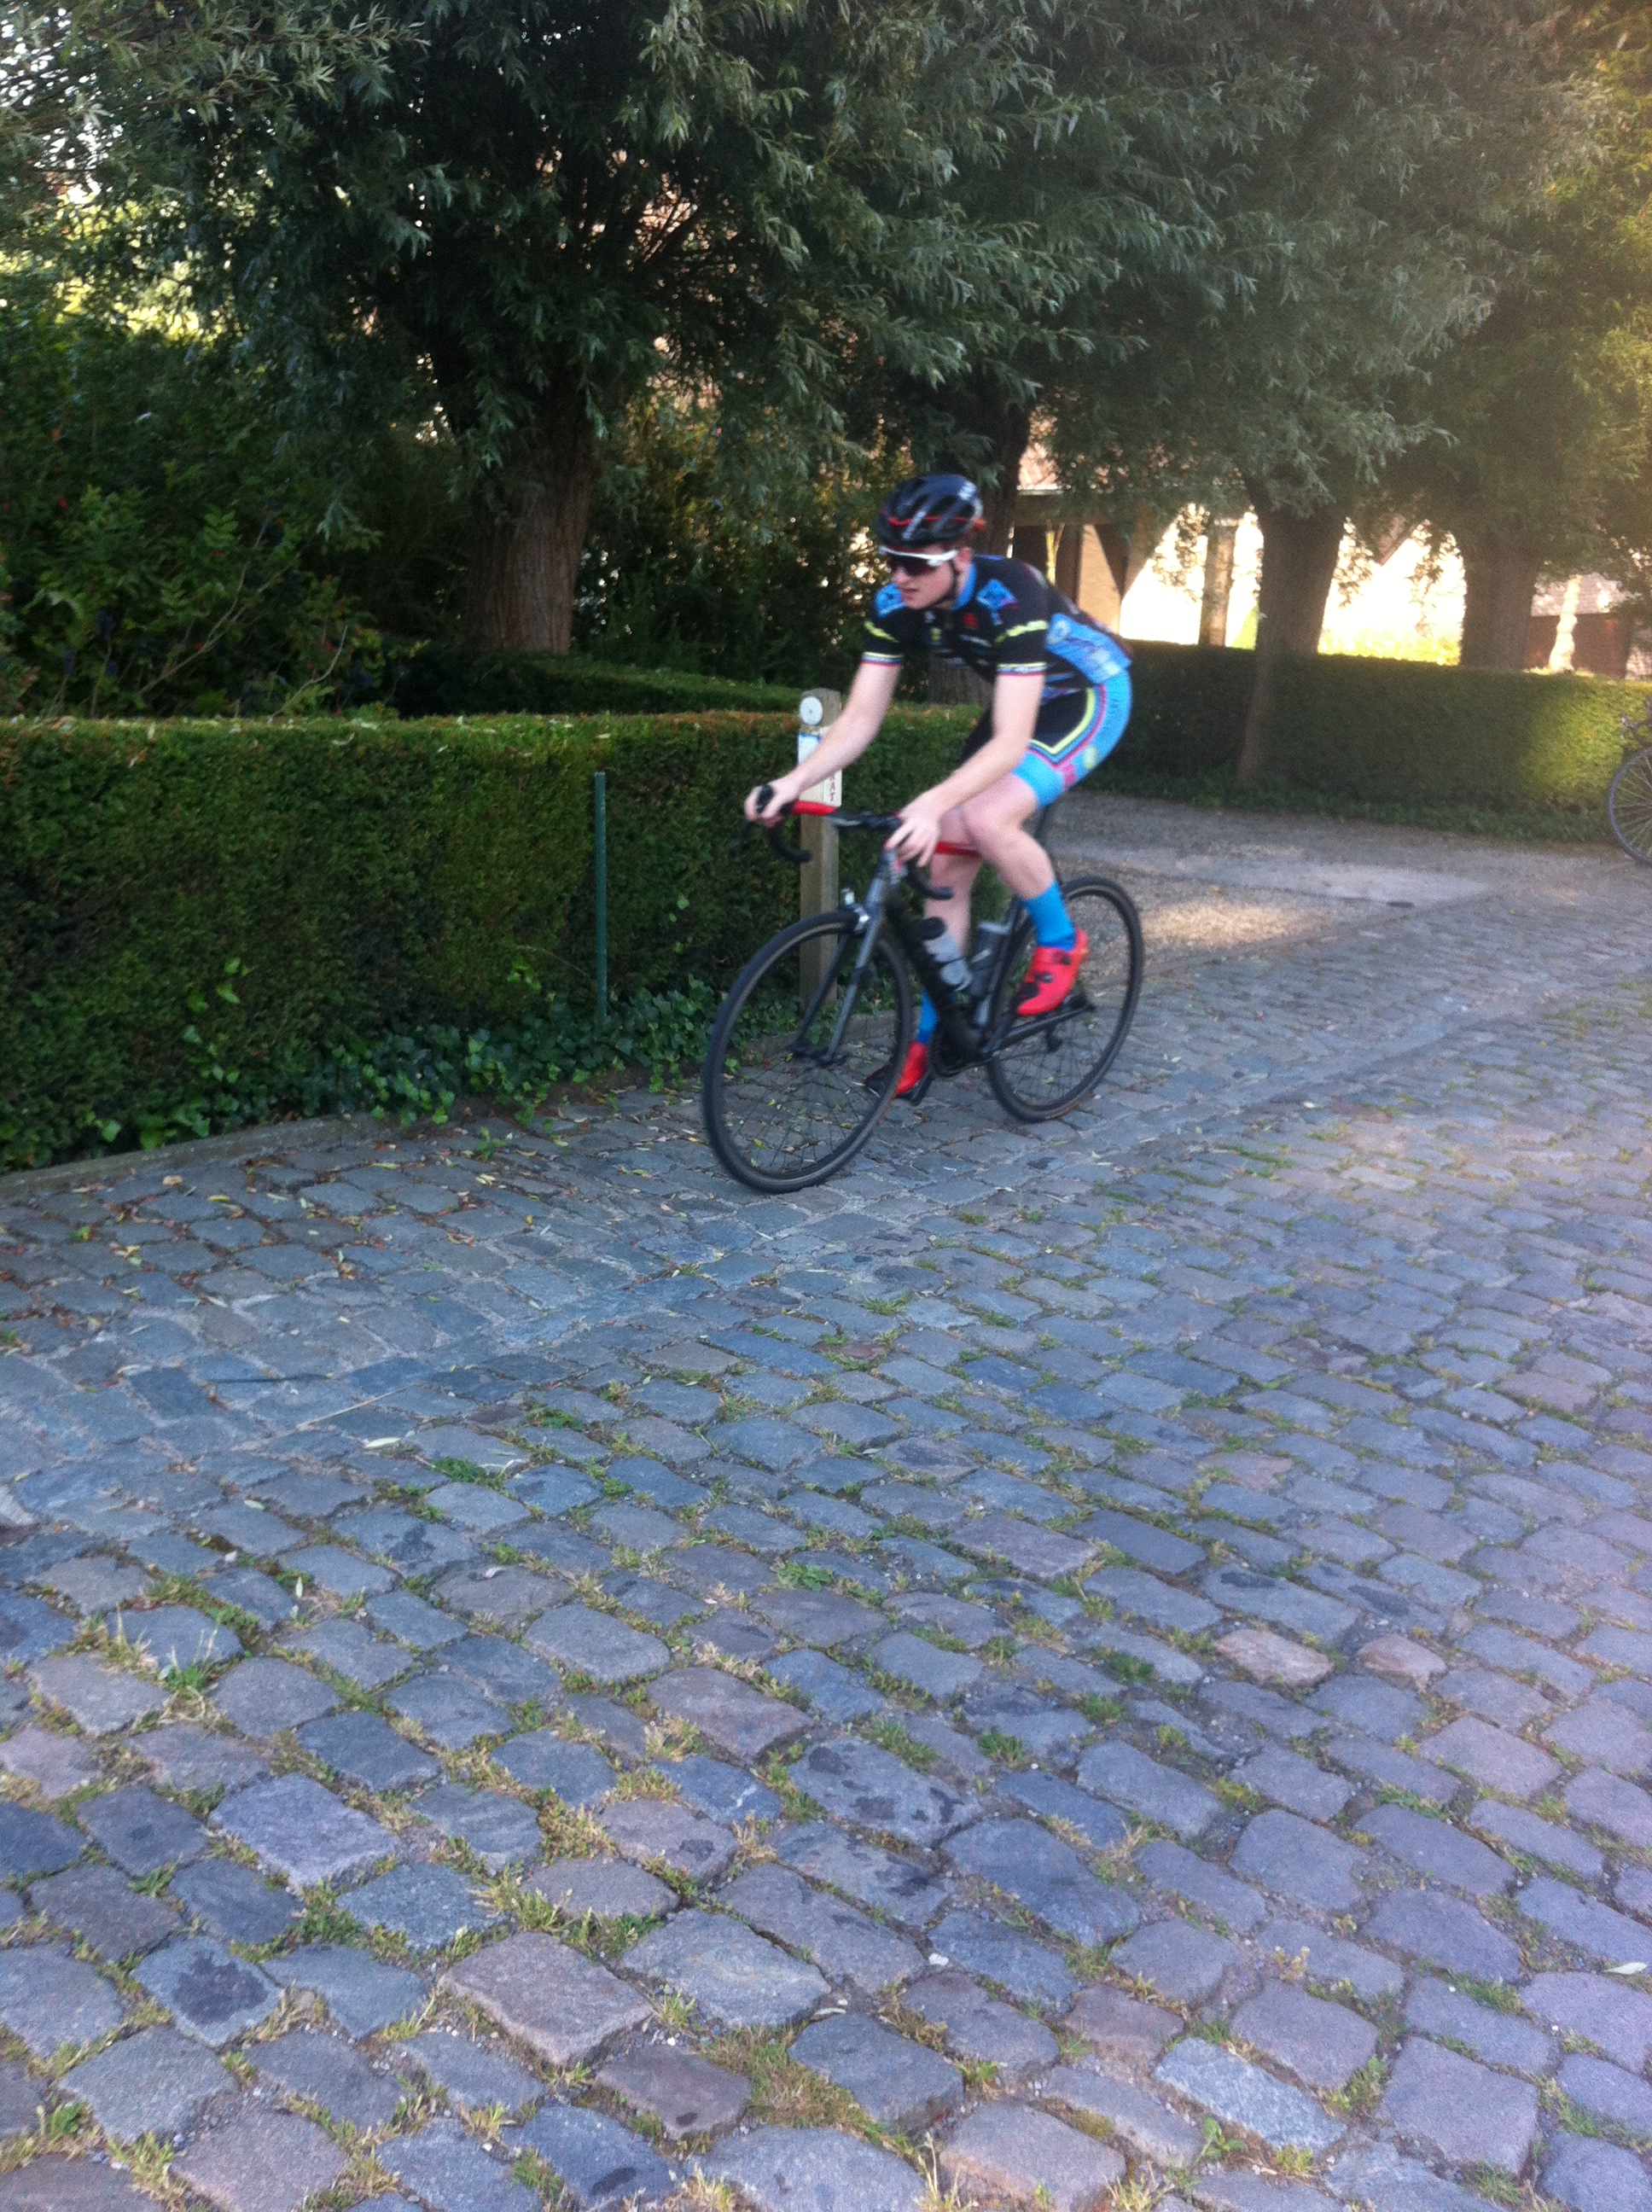 Koppenberg and the only way is up ...